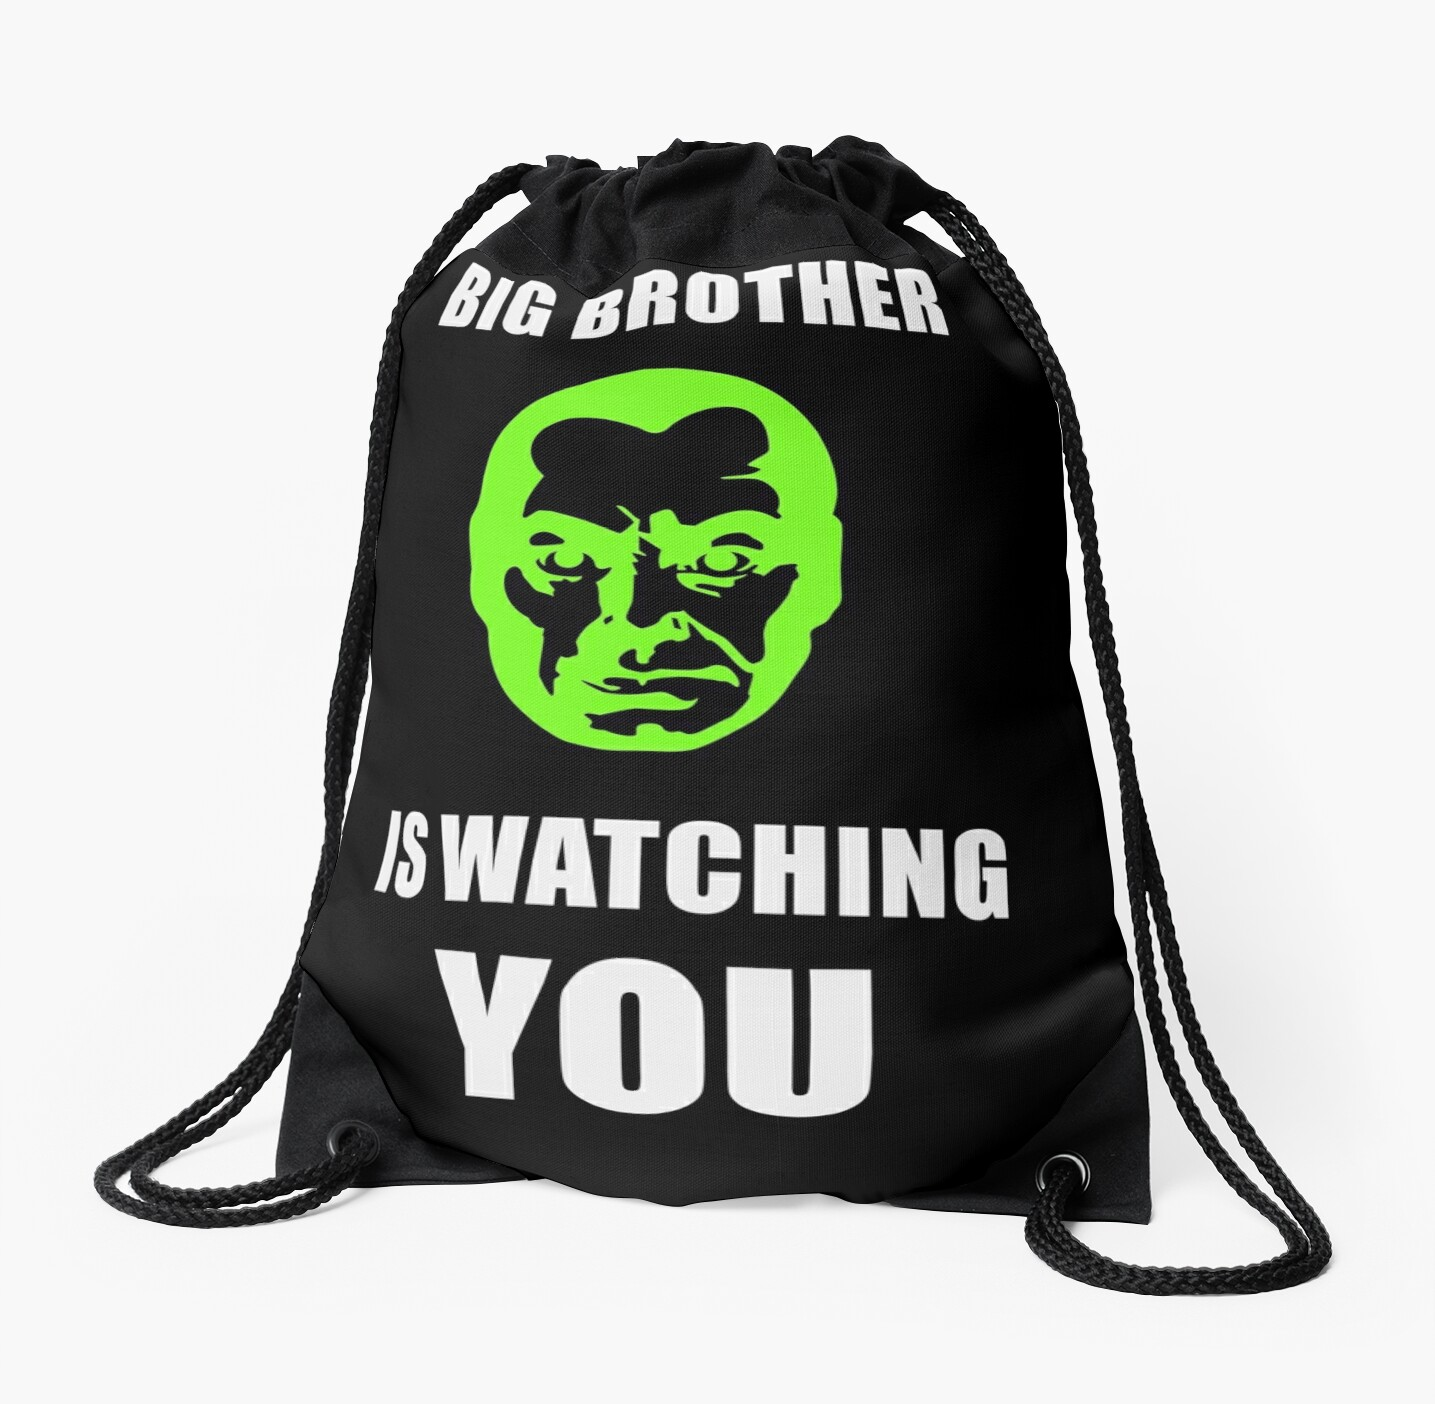 NSA - Big Brother is Watching You by nametaken